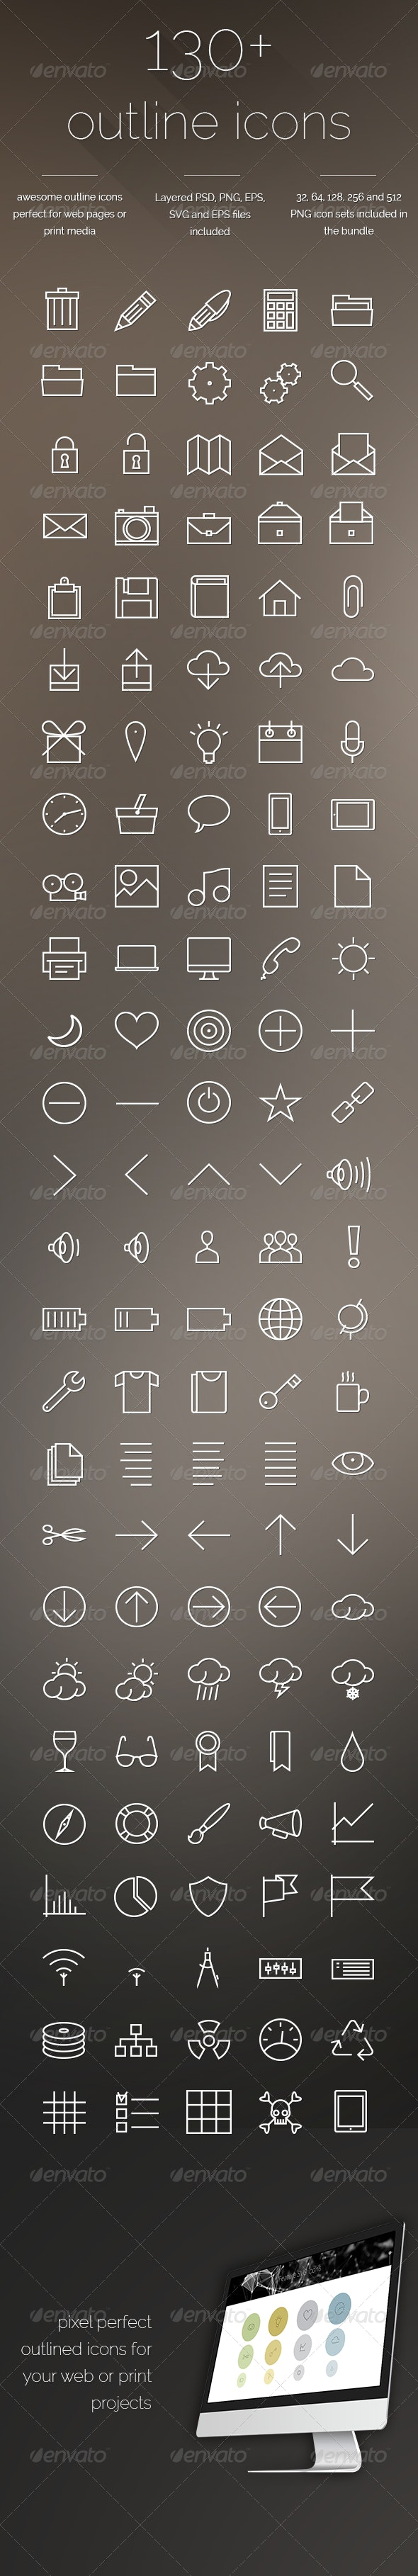 Outline Icons - Set of 130+ icons - Web Icons